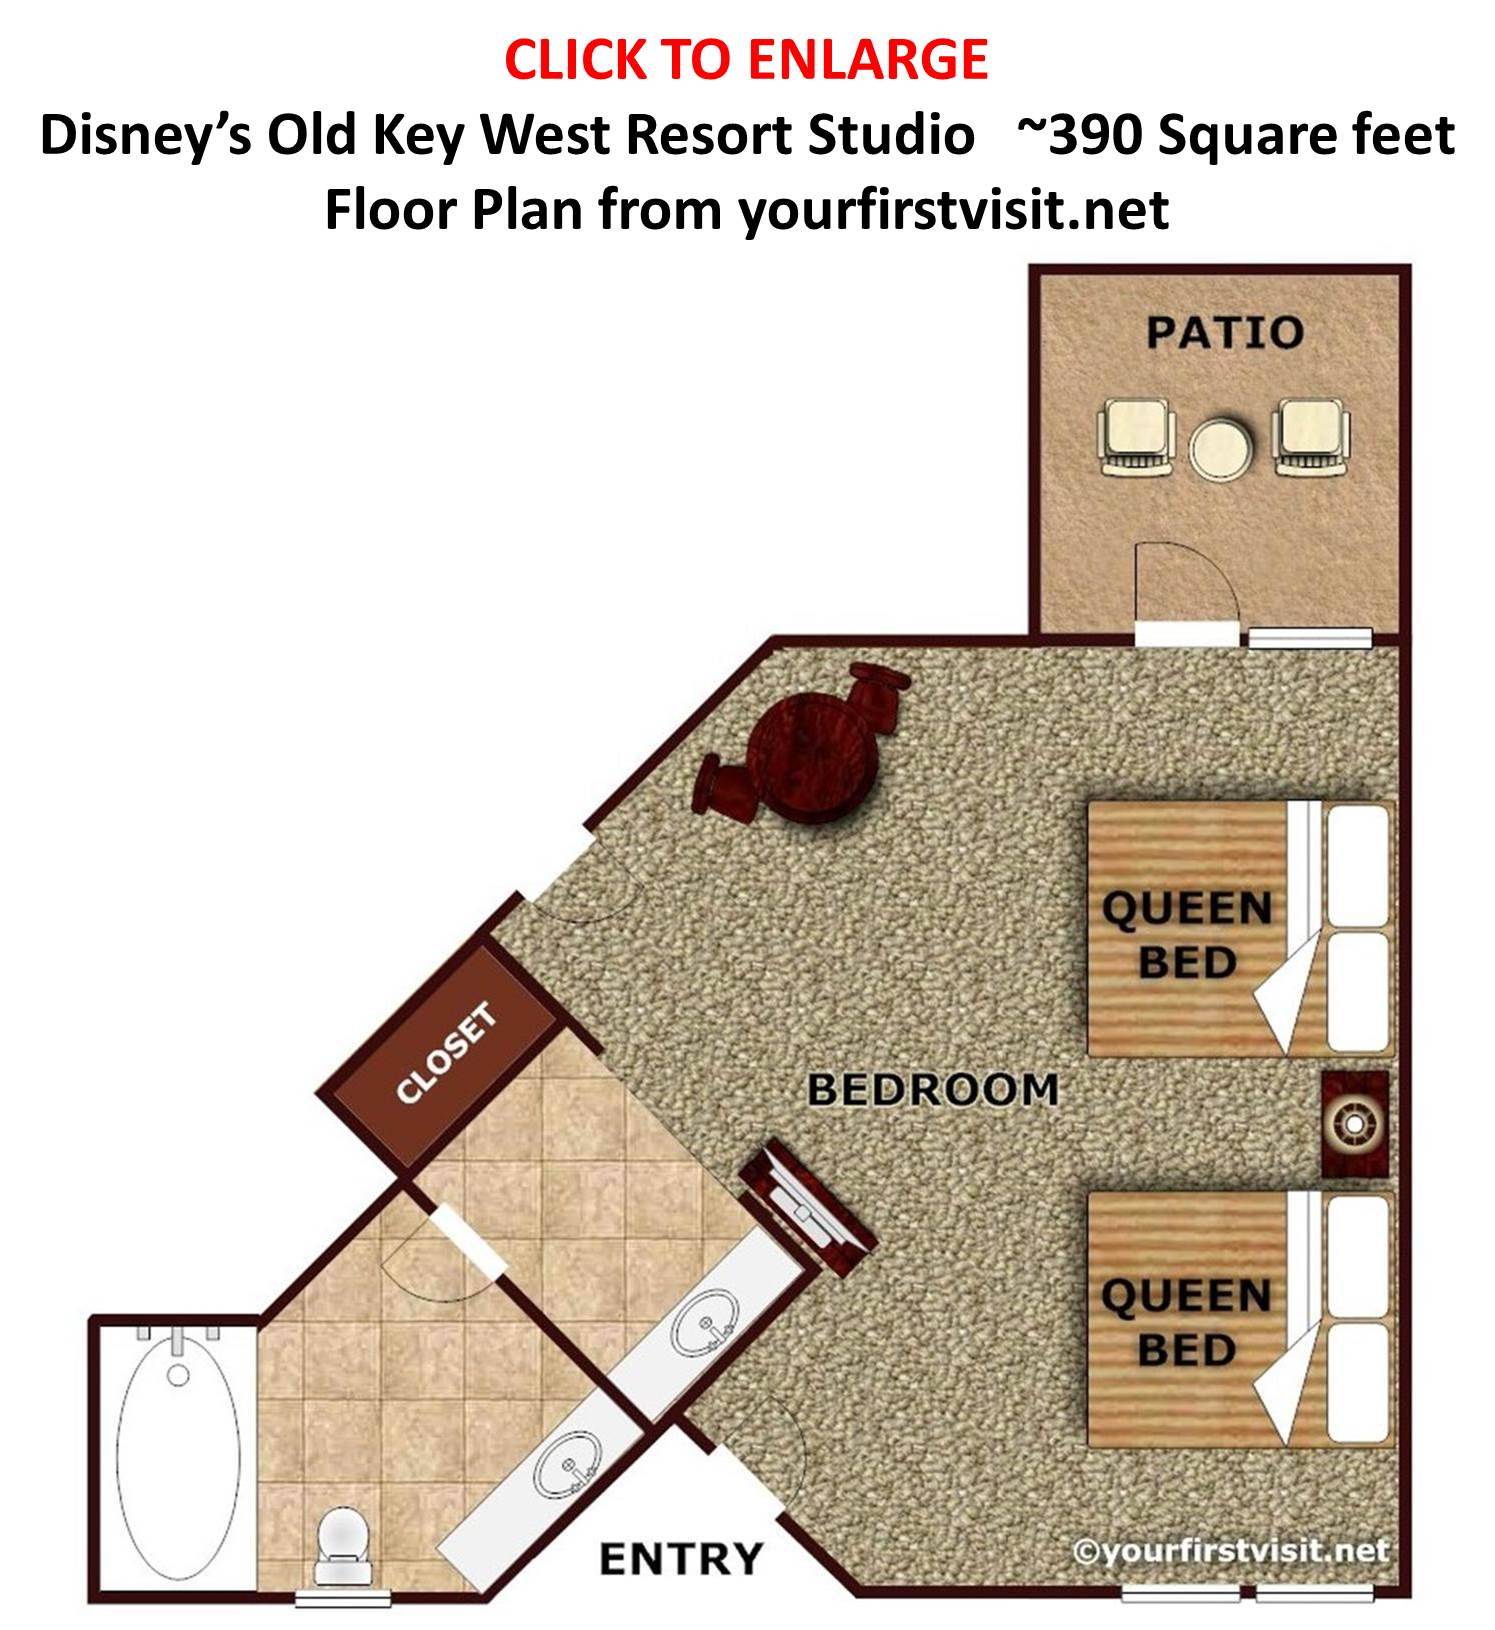 overview of accomodations at disney's old key west resort